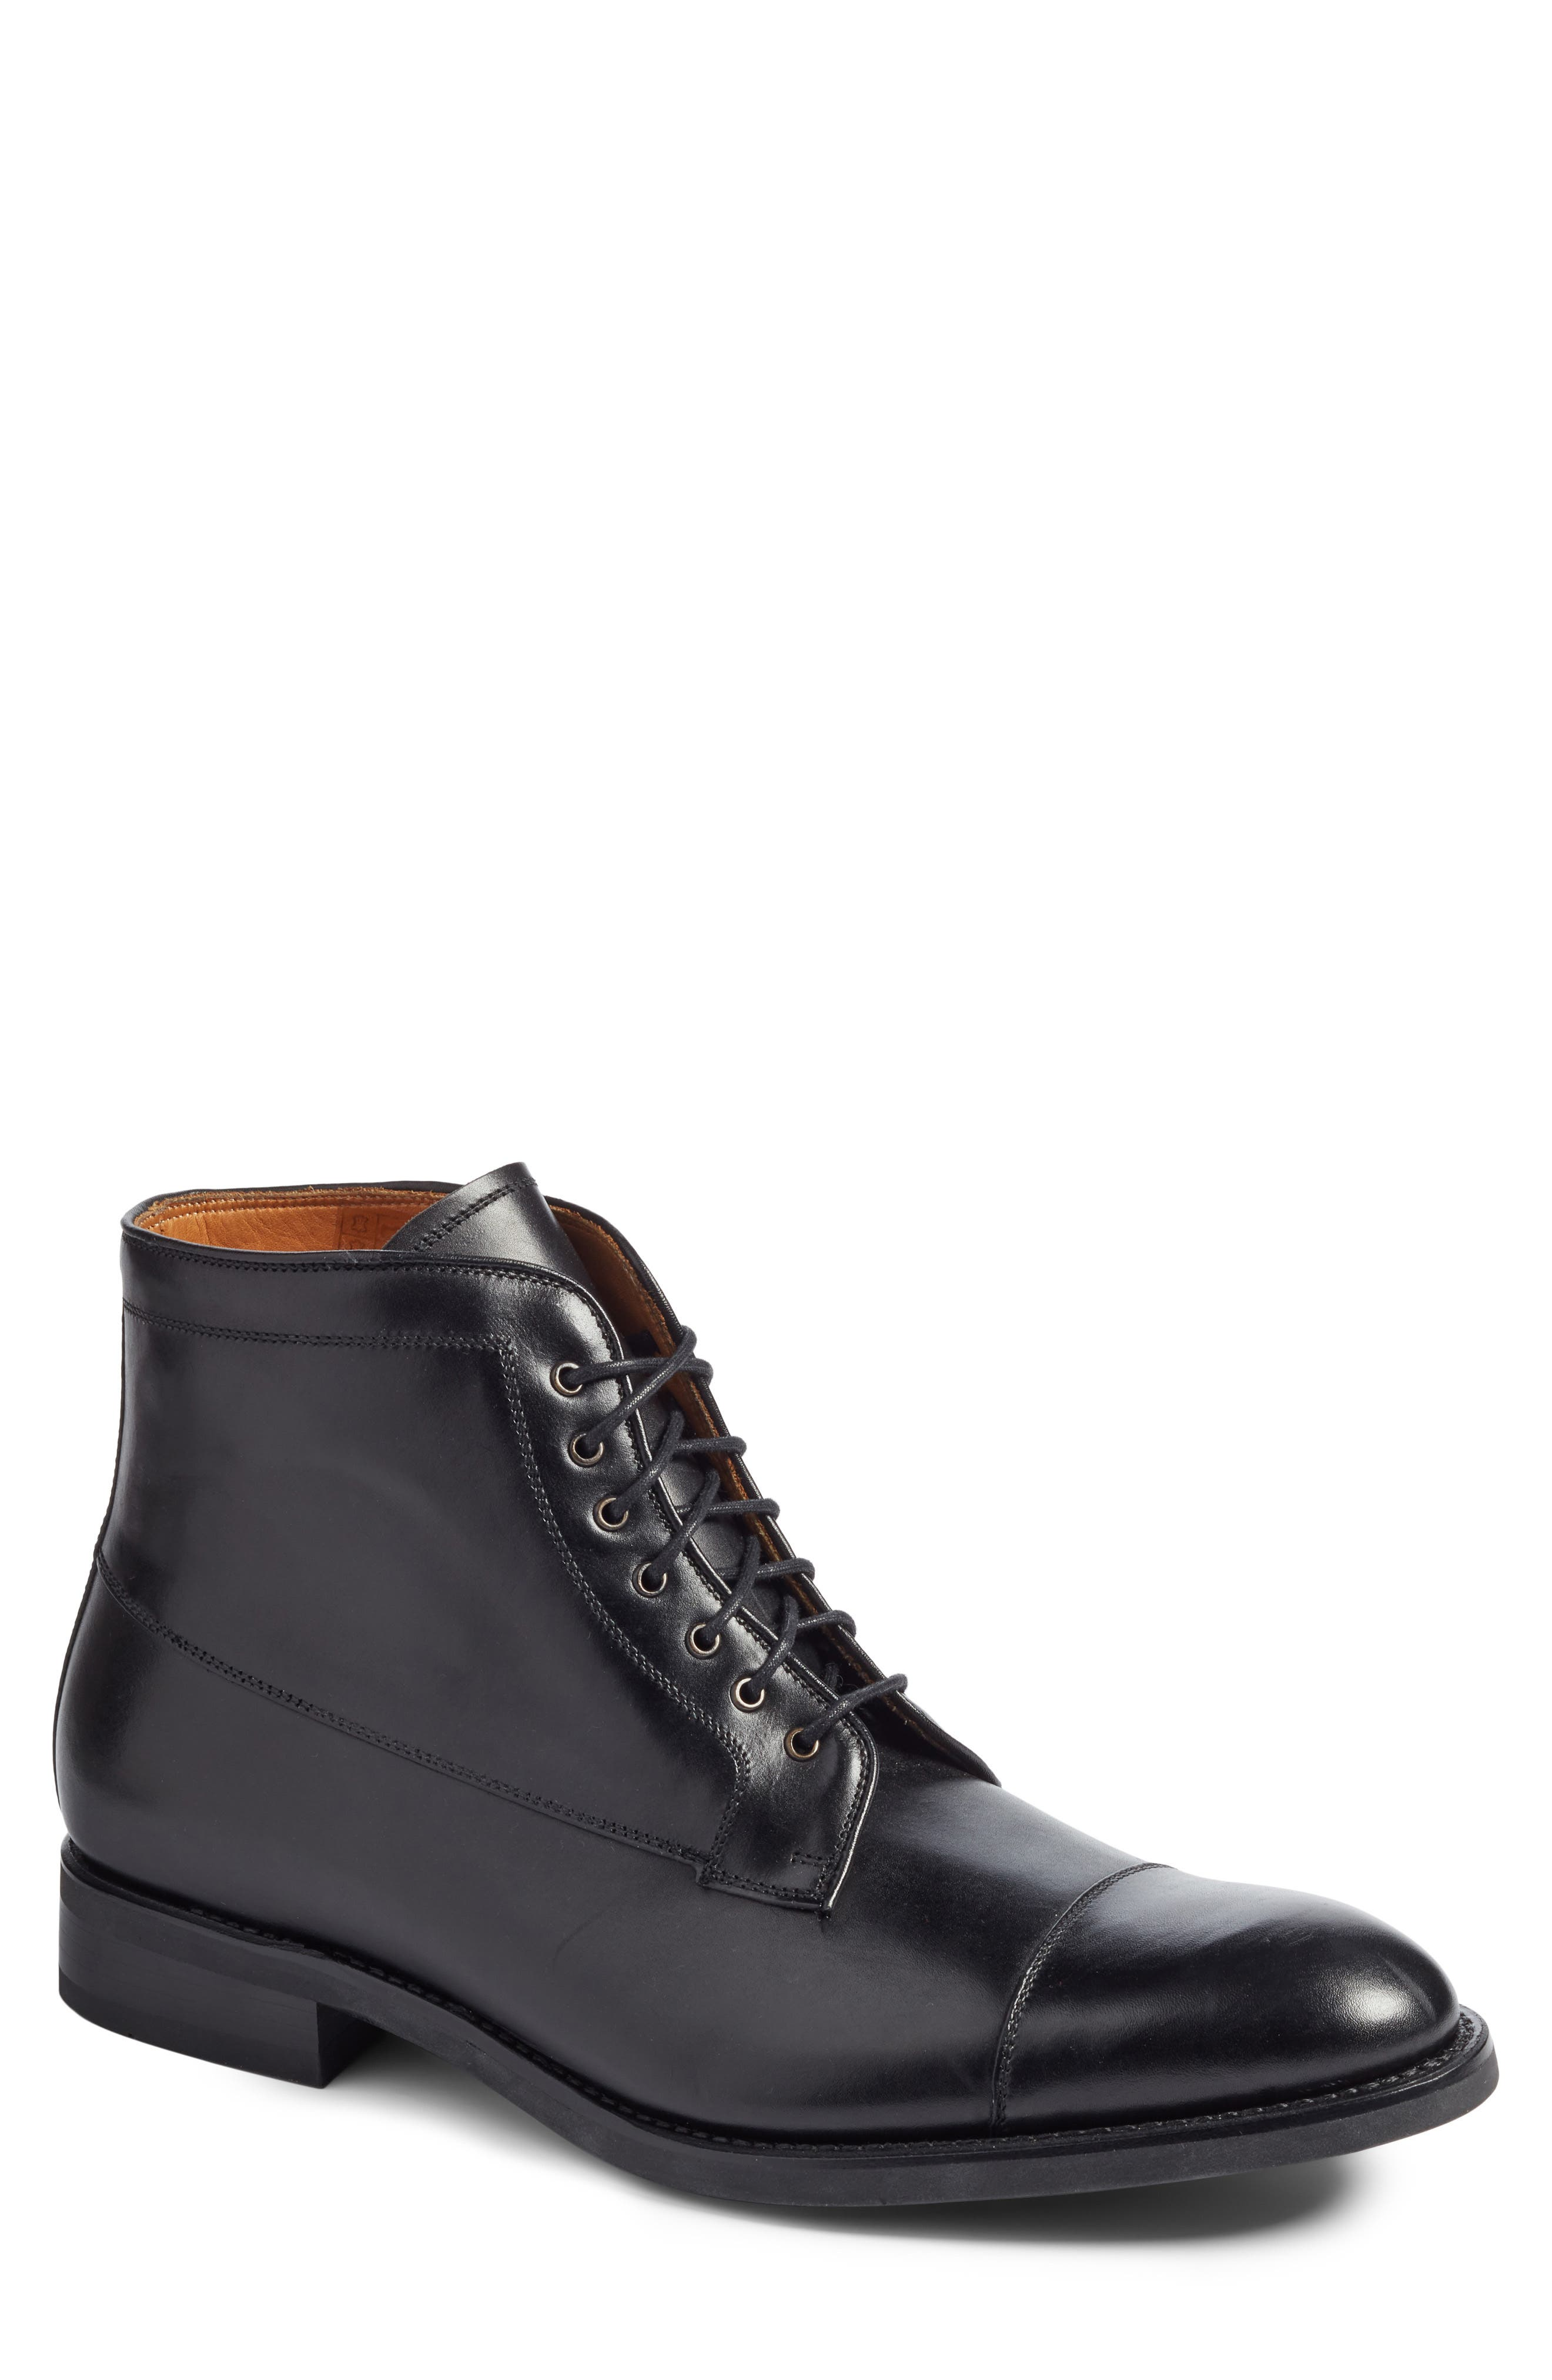 Chester Cap Toe Boot,                         Main,                         color, Black Leather